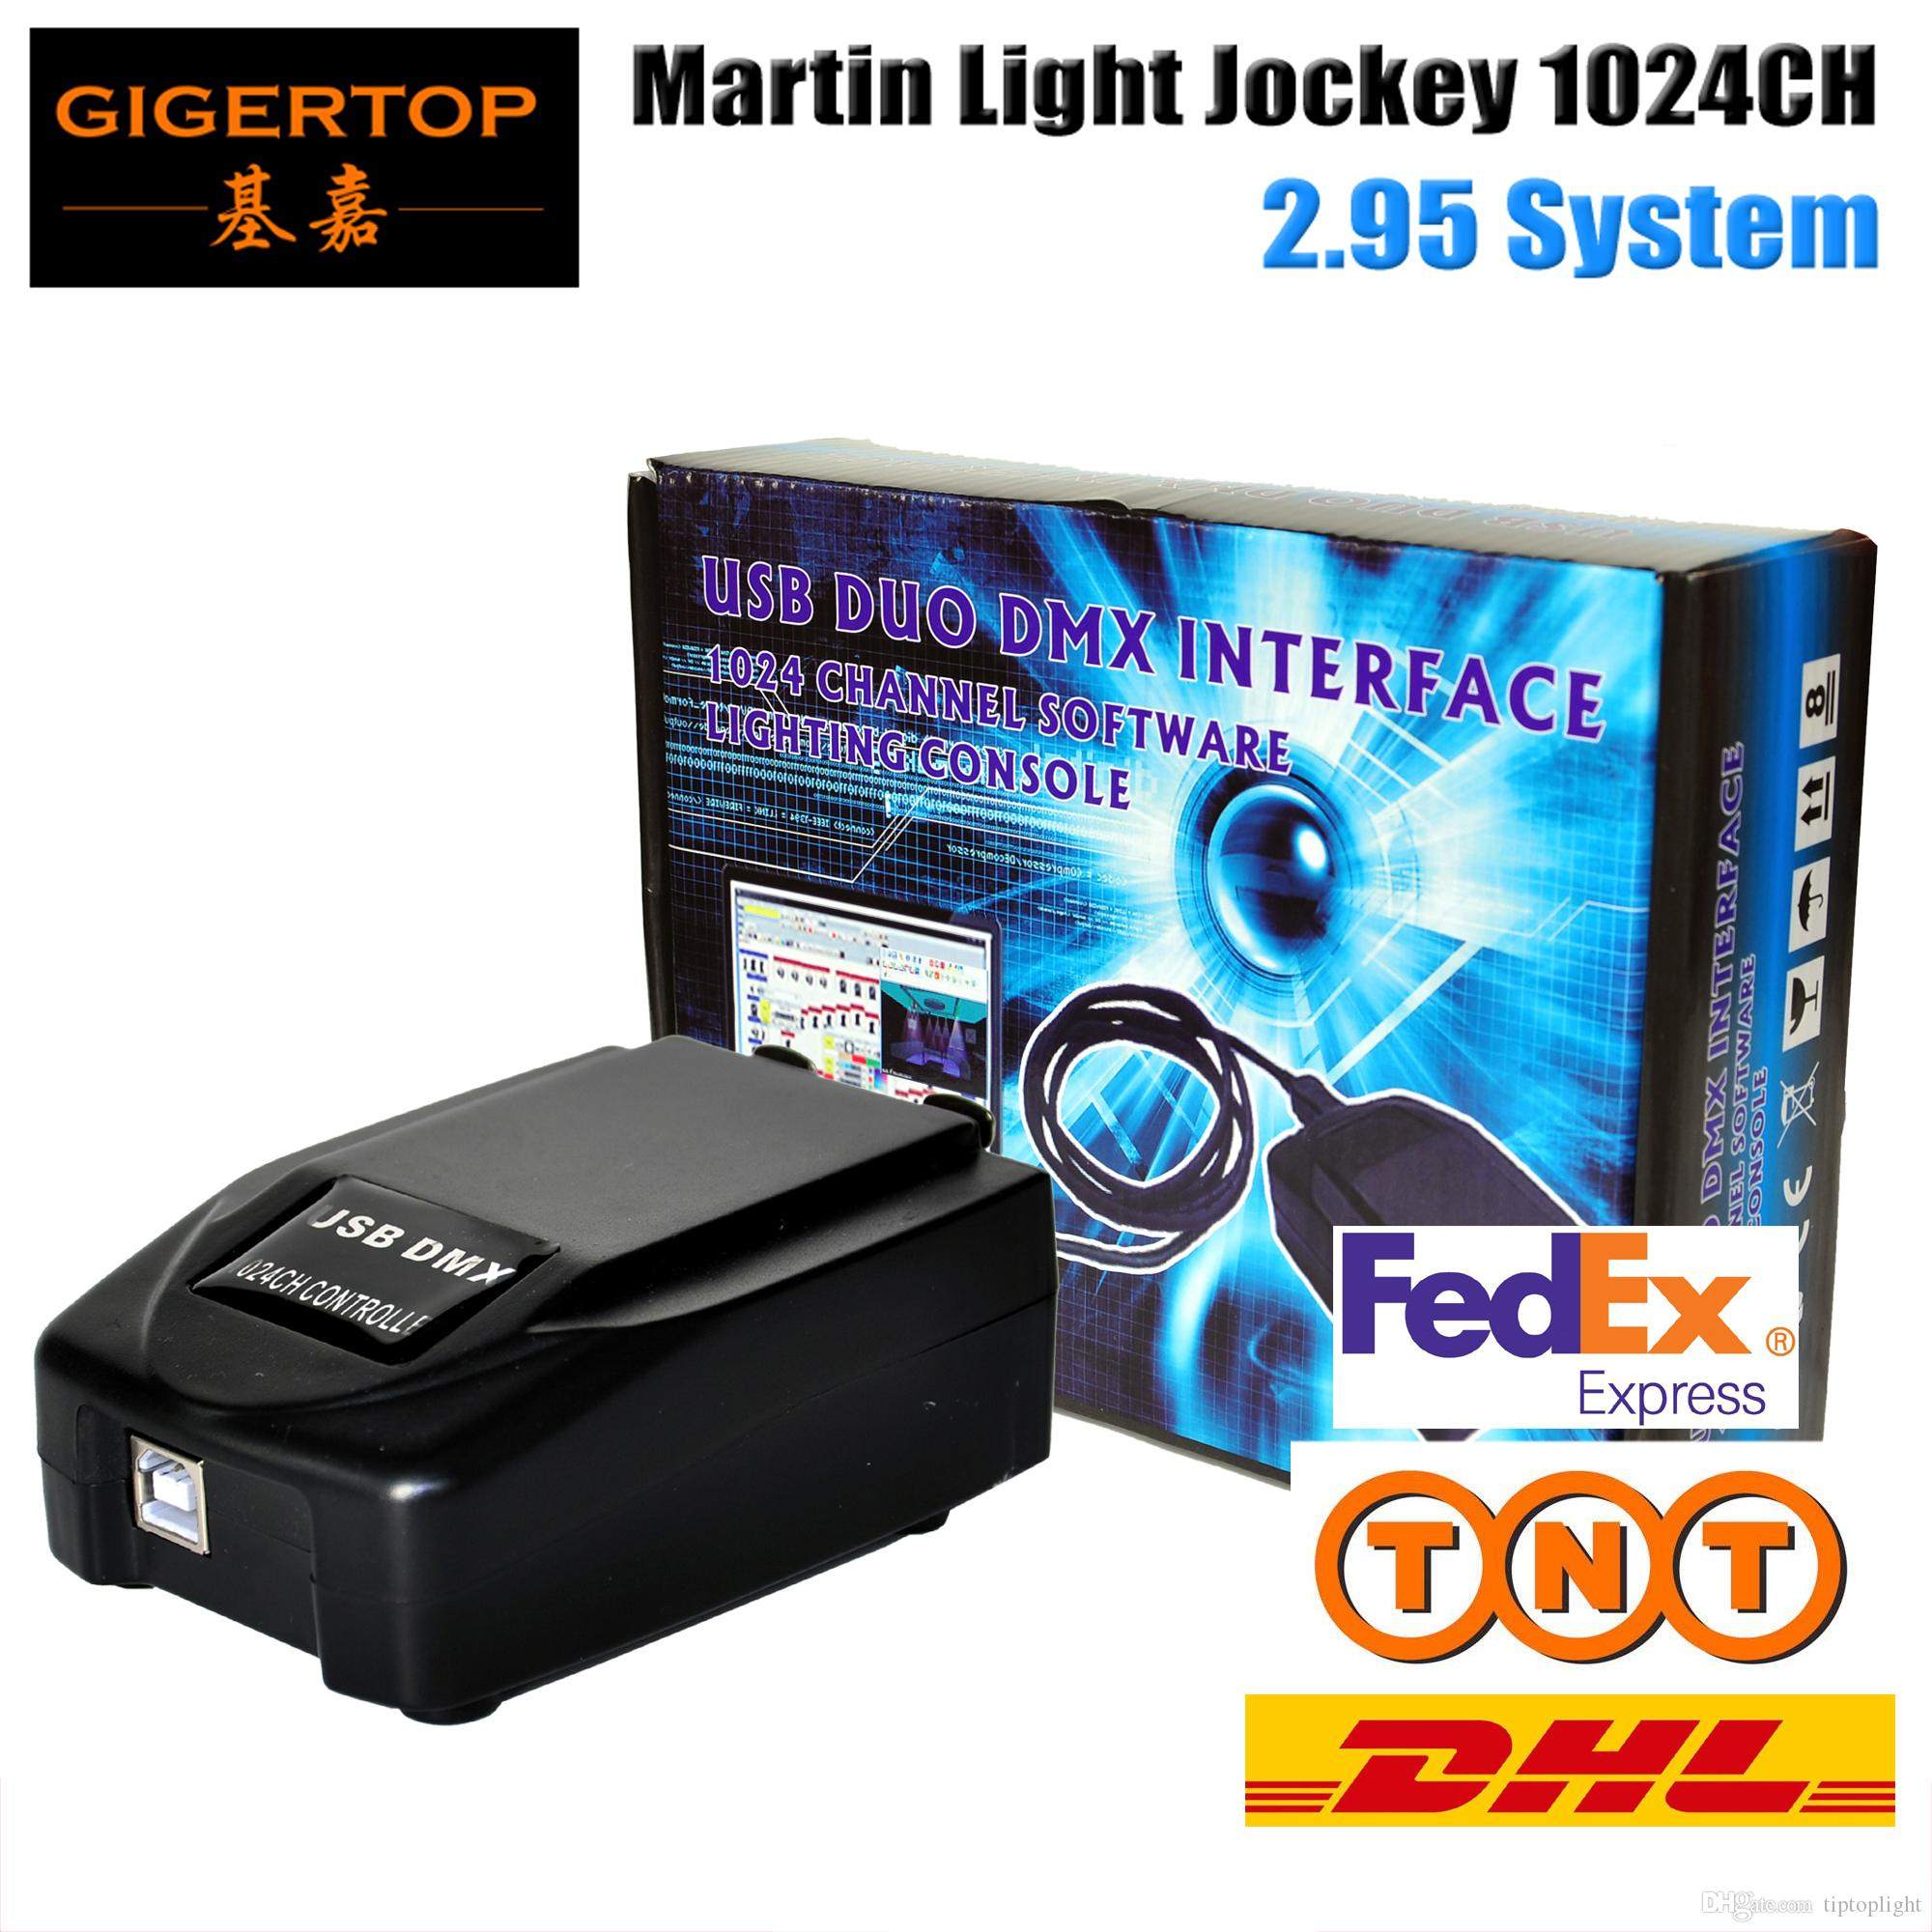 TIPTOP 3PIN USB 1024 Martin Lightjockey Led Regolatore di luce USB Martin light jockey Controller USB DMX512 Stage Light Controll